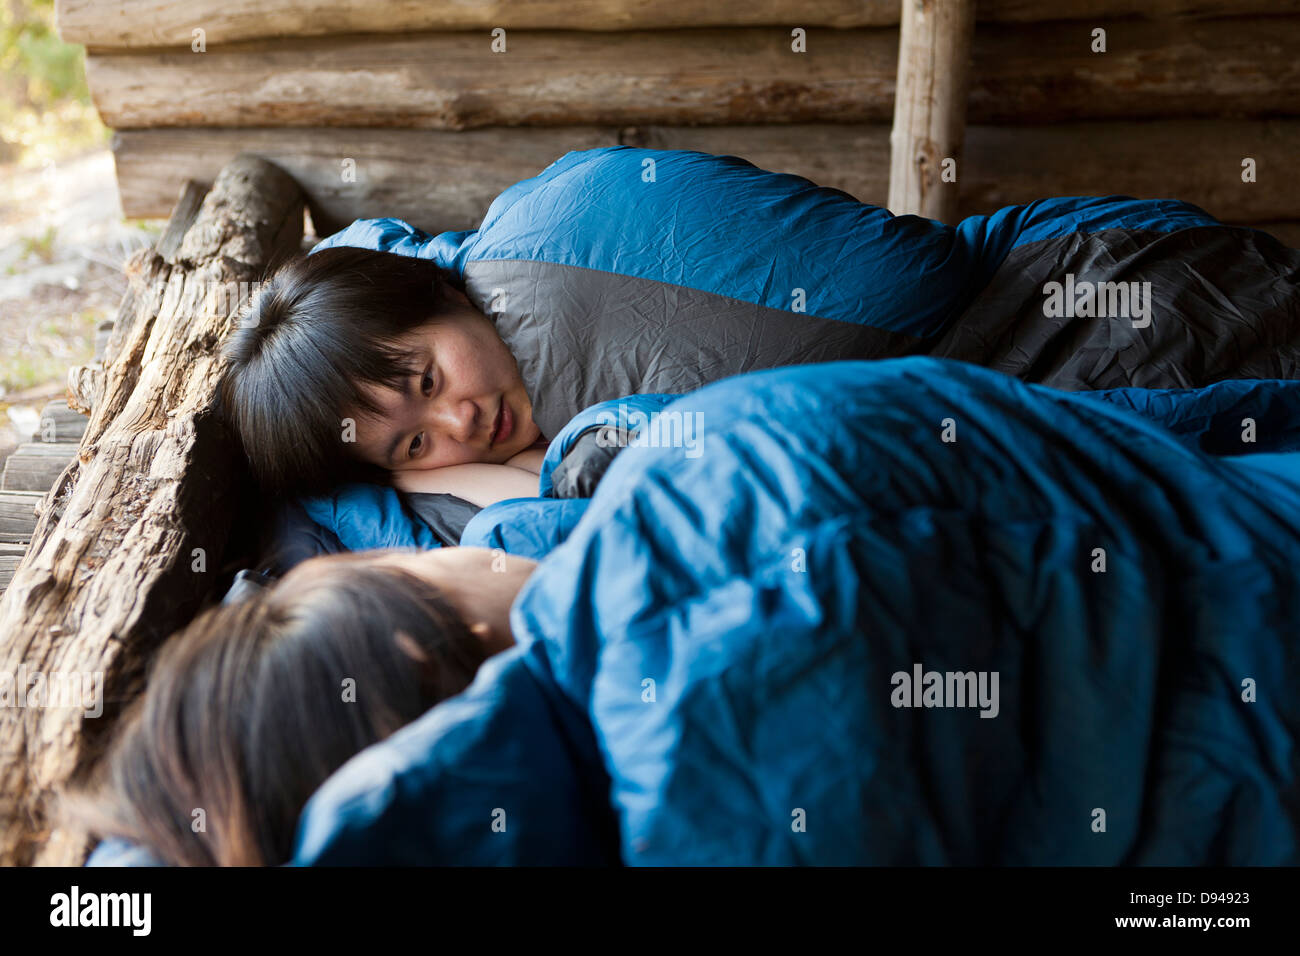 Two female tourists sleeping in shelter - Stock Image